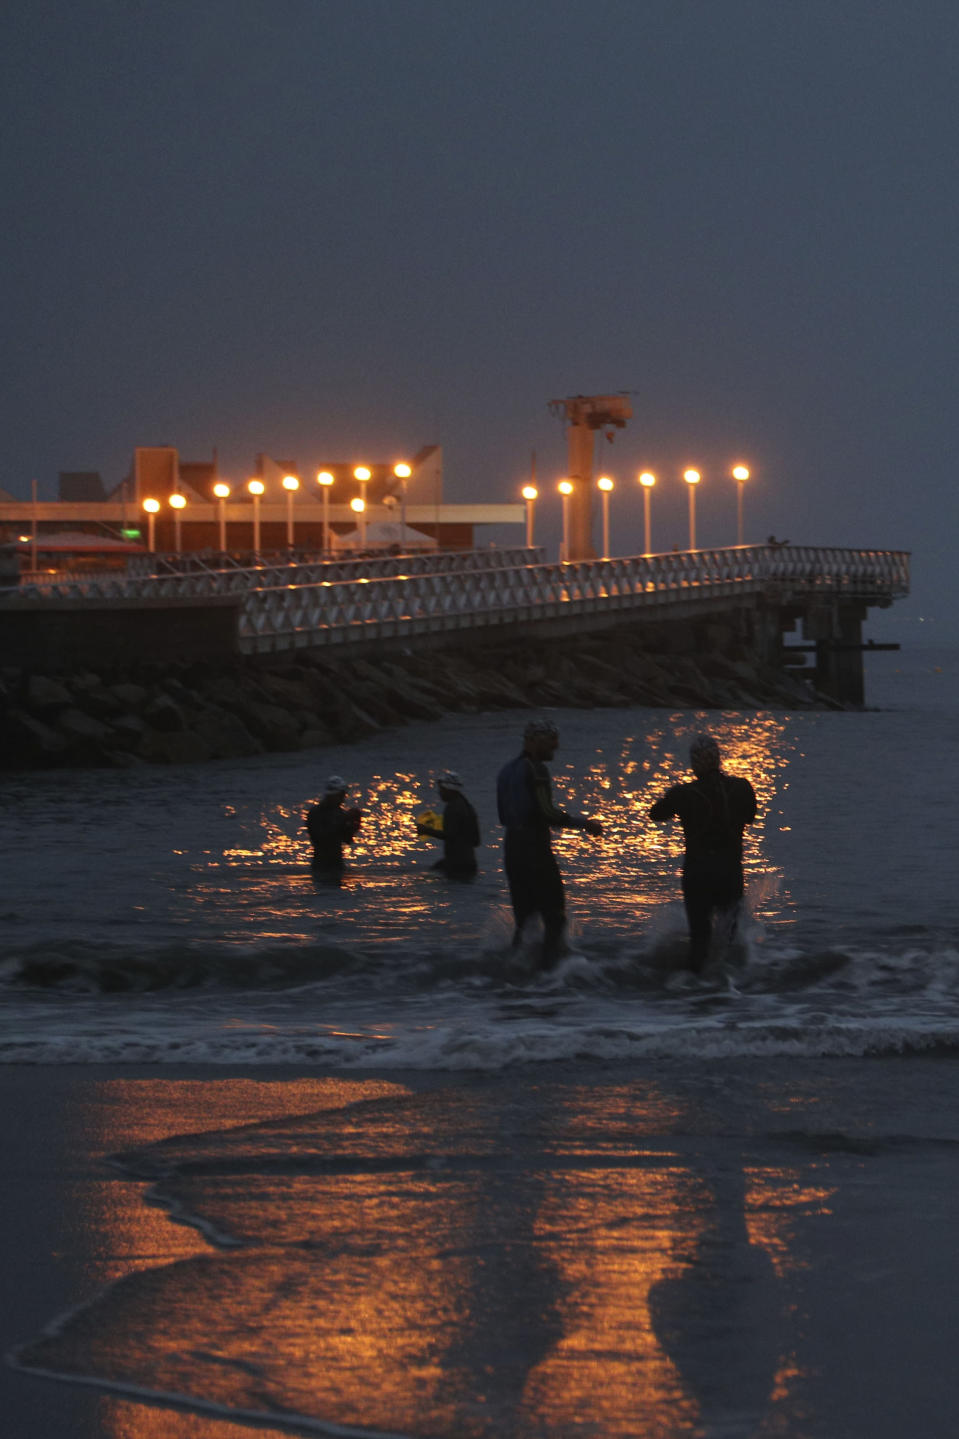 Swimmers arrive near a pier at Pescadores beach in Lima, Peru at sunrise, Tuesday, April 27, 2021. One of the few sporting disciplines that have been maintained during the coronavirus pandemic is swimming, which due to the closure of the swimming pools, has moved to the open sea. (AP Photo/Martin Mejia)